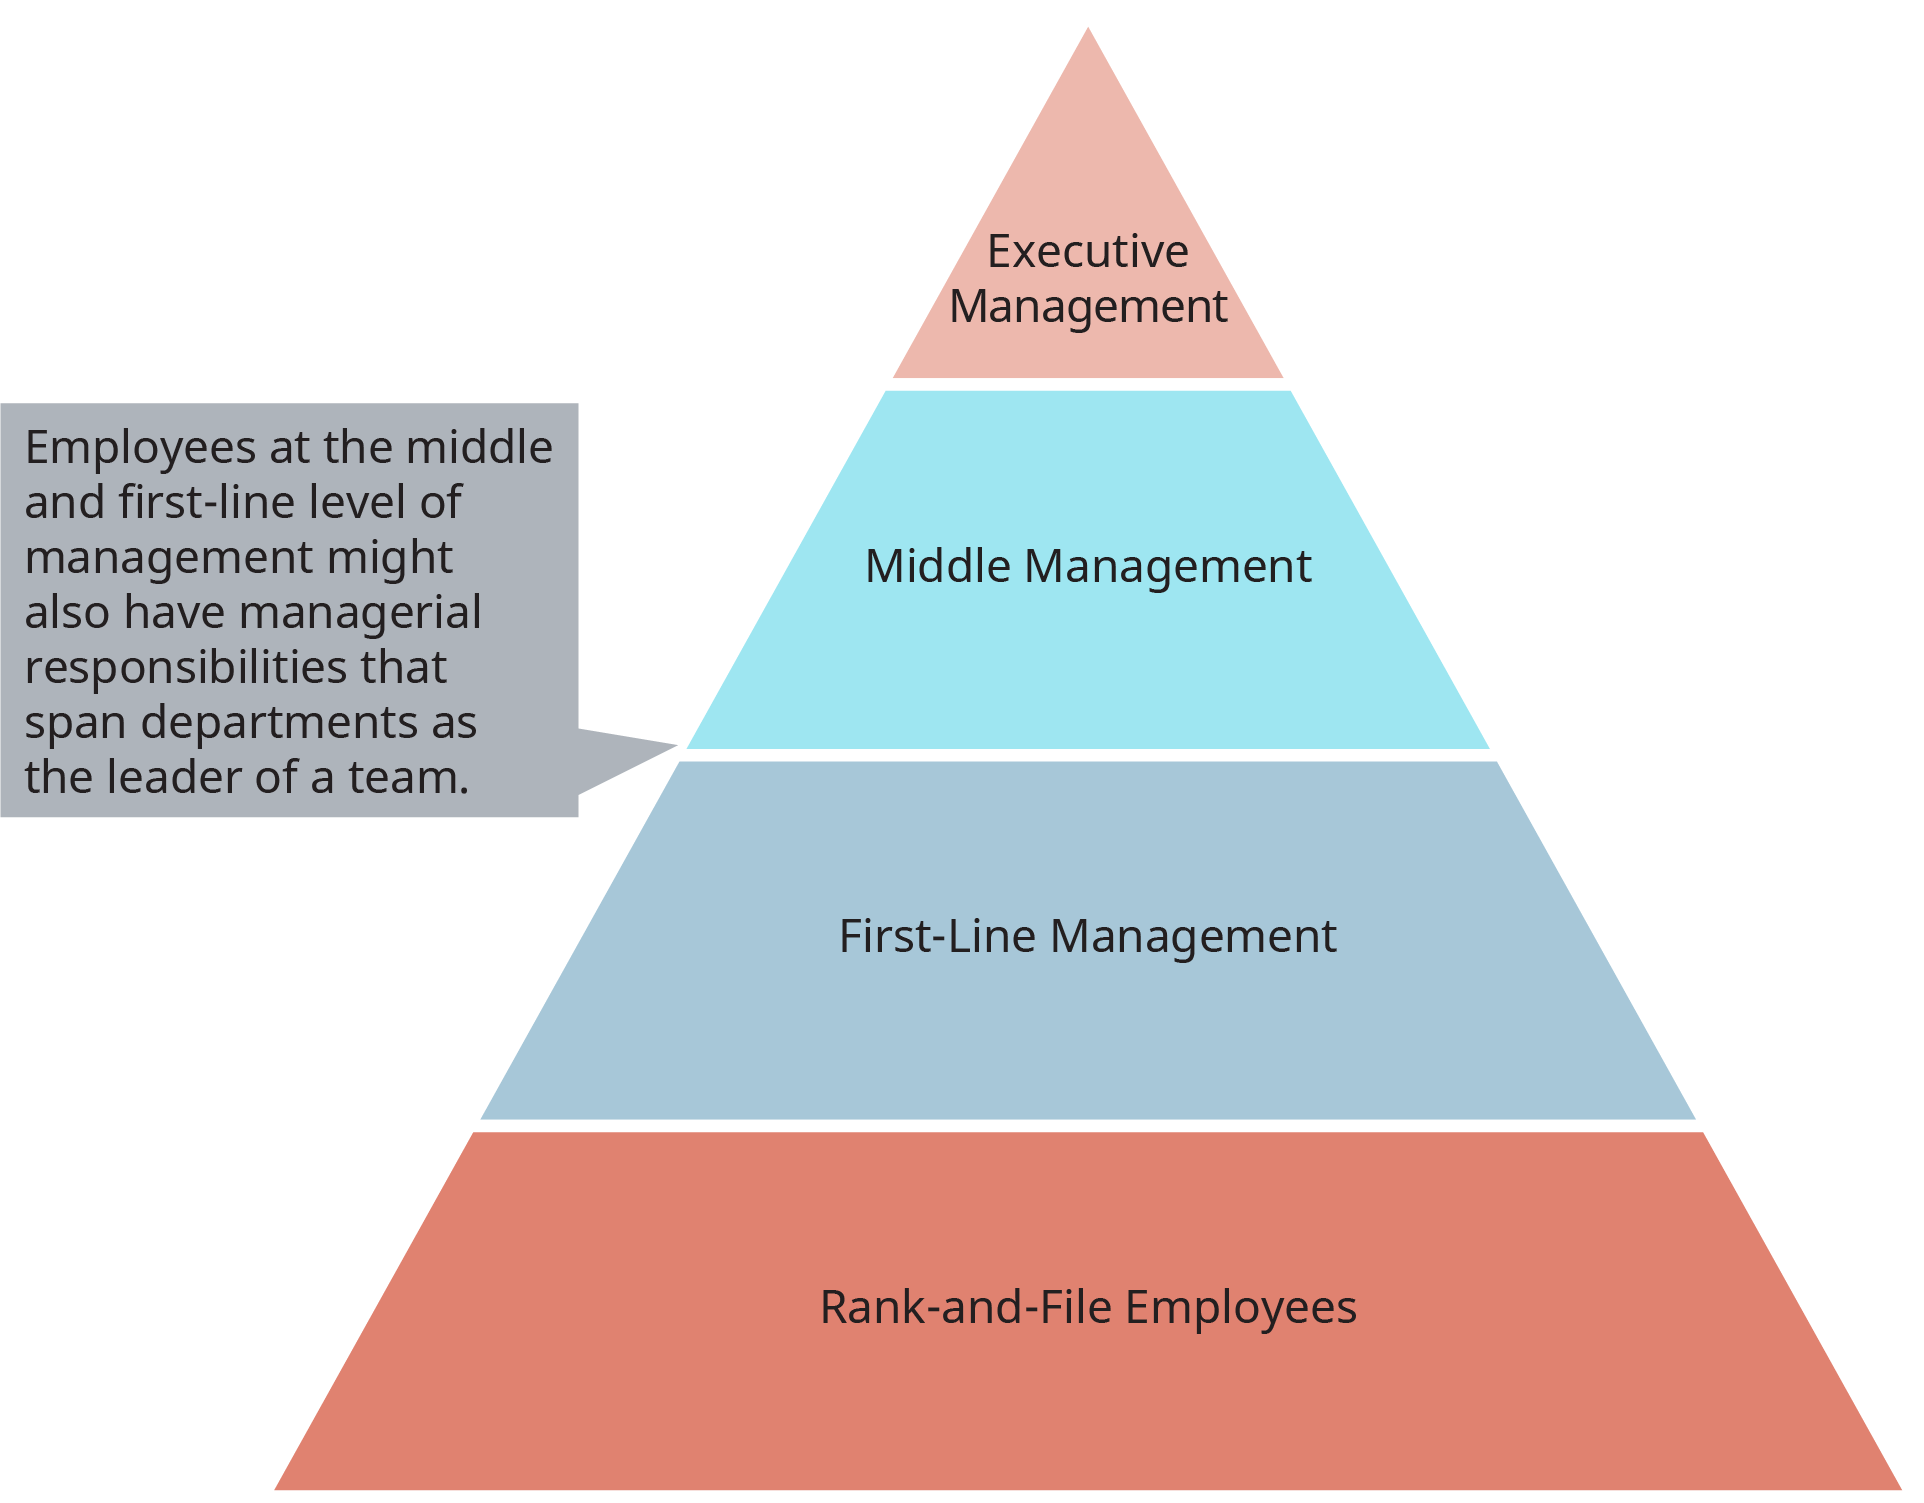 An illustration shows a pyramid representing differences in managerial activities by hierarchical level.